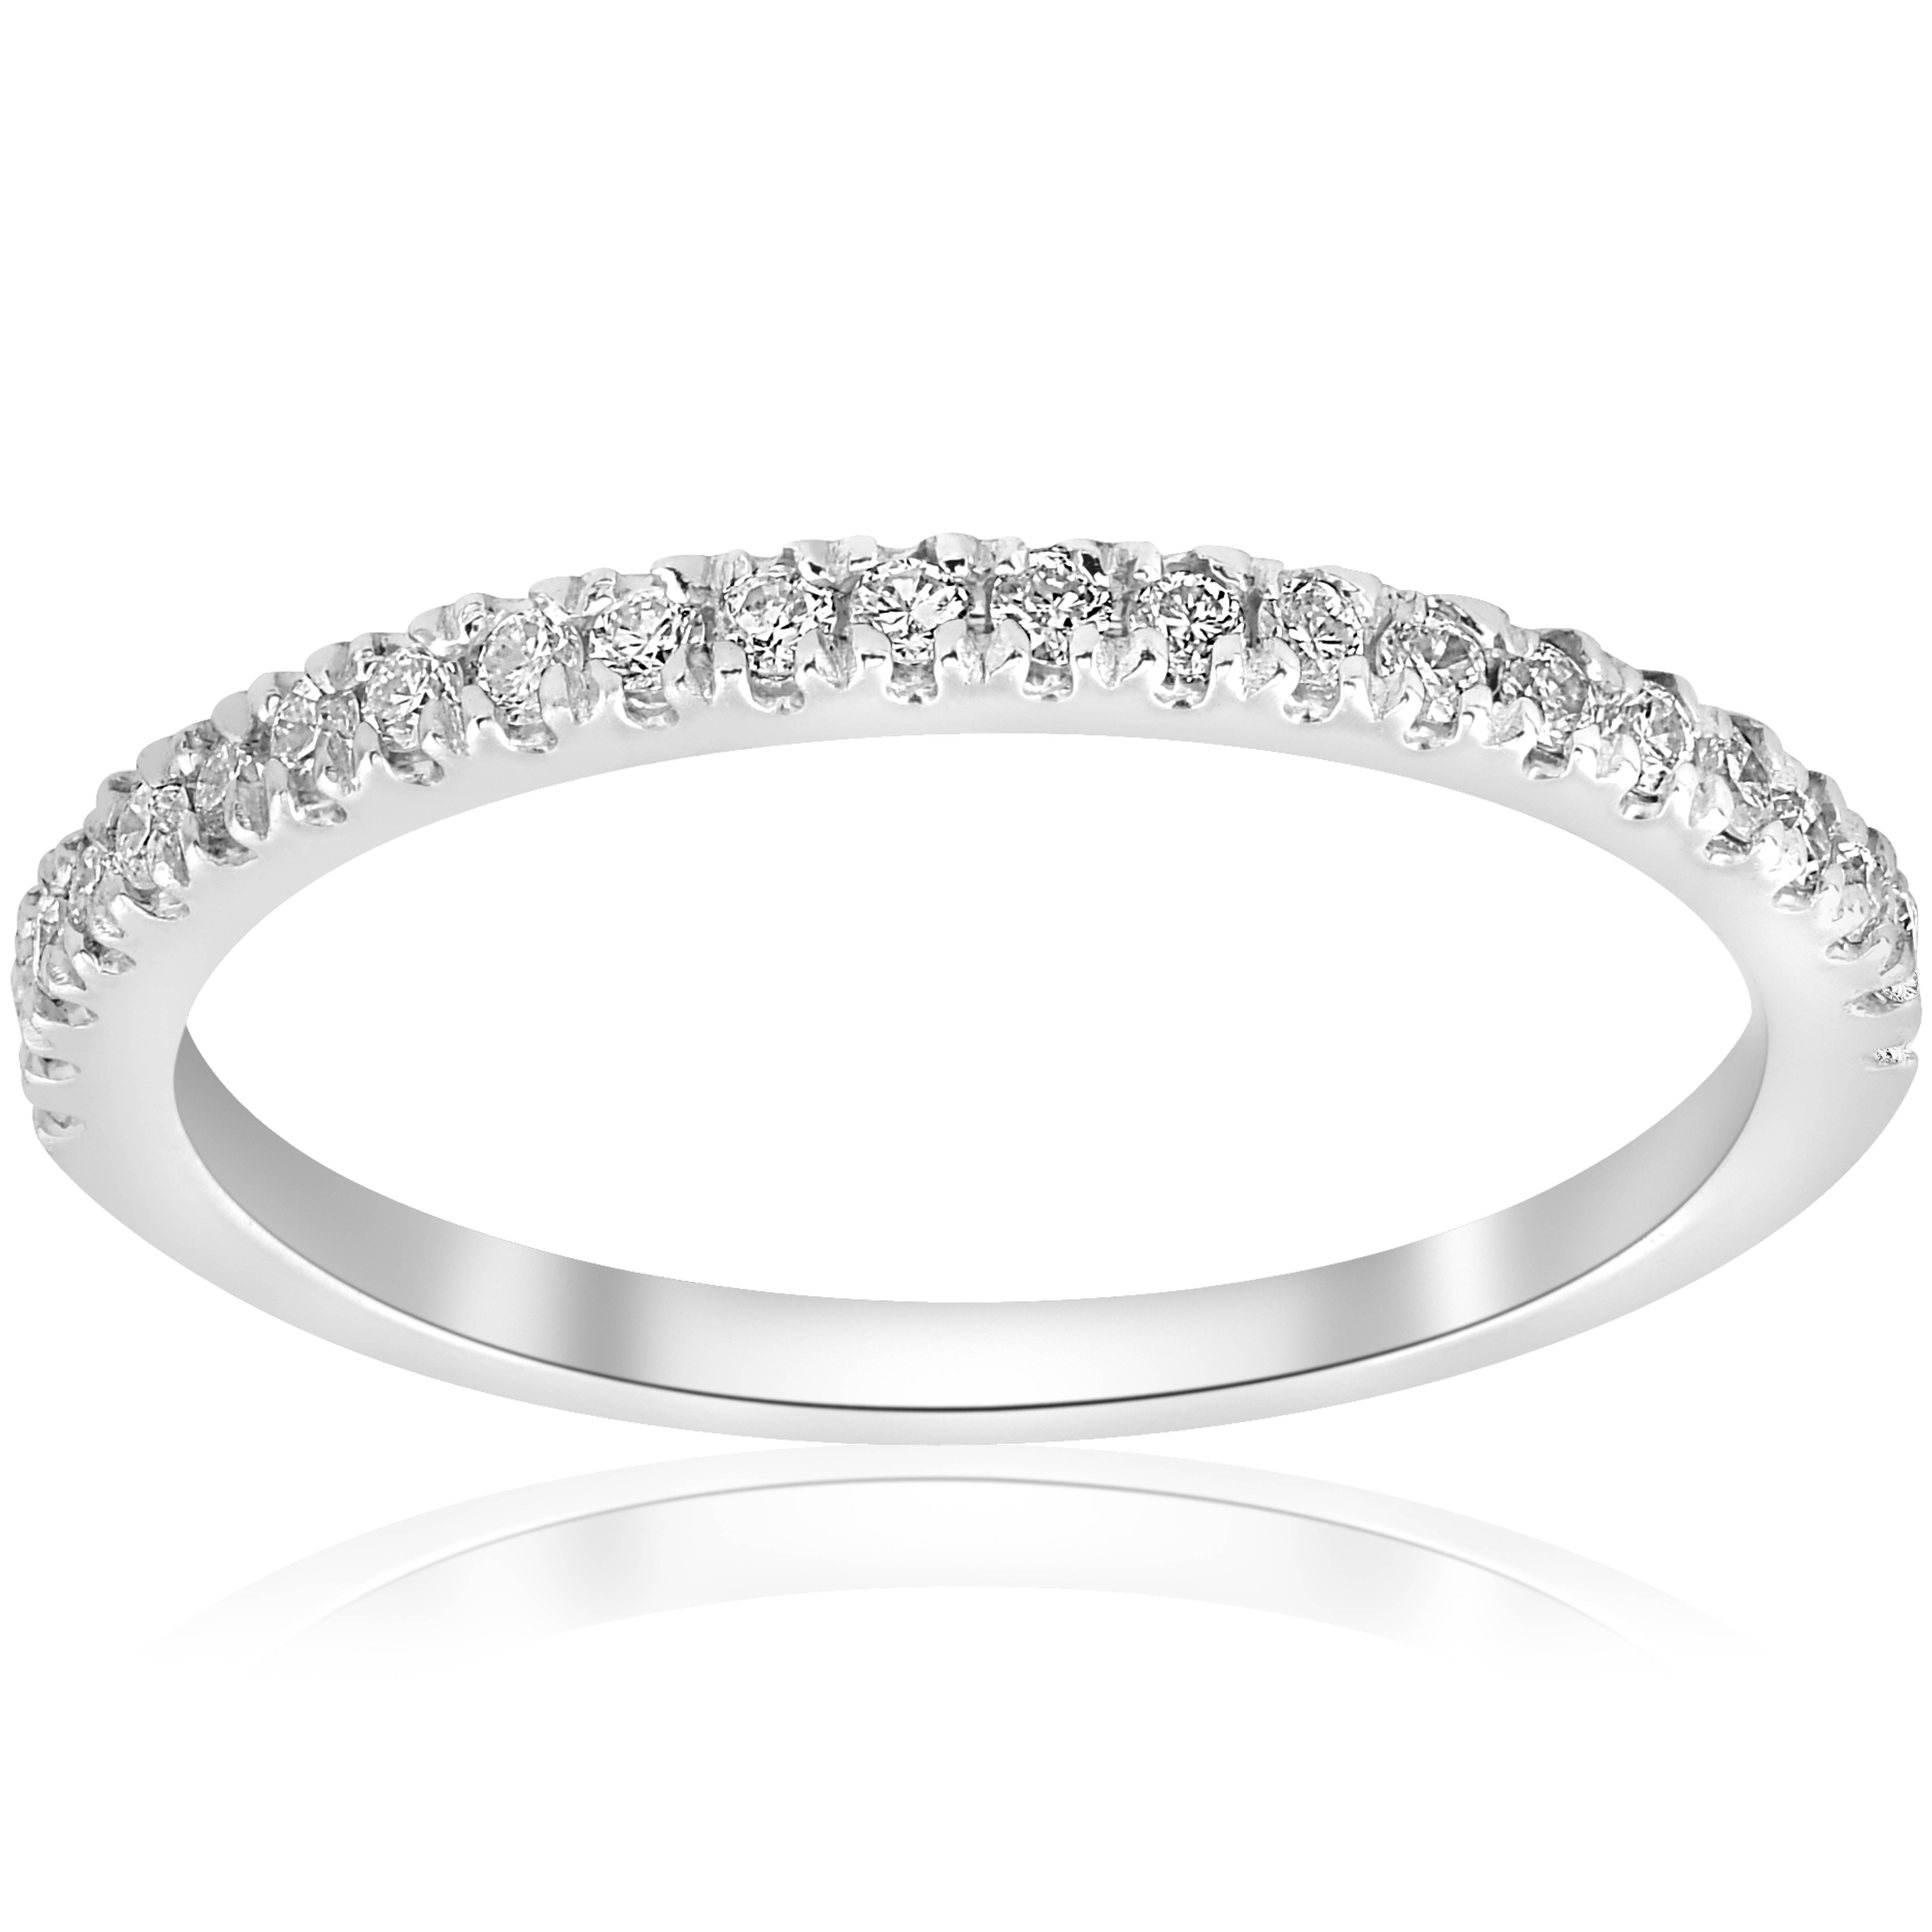 Wedding Band 10k White Gold: Stackable Band 1/5ct Diamond Wedding Band 10K White Gold